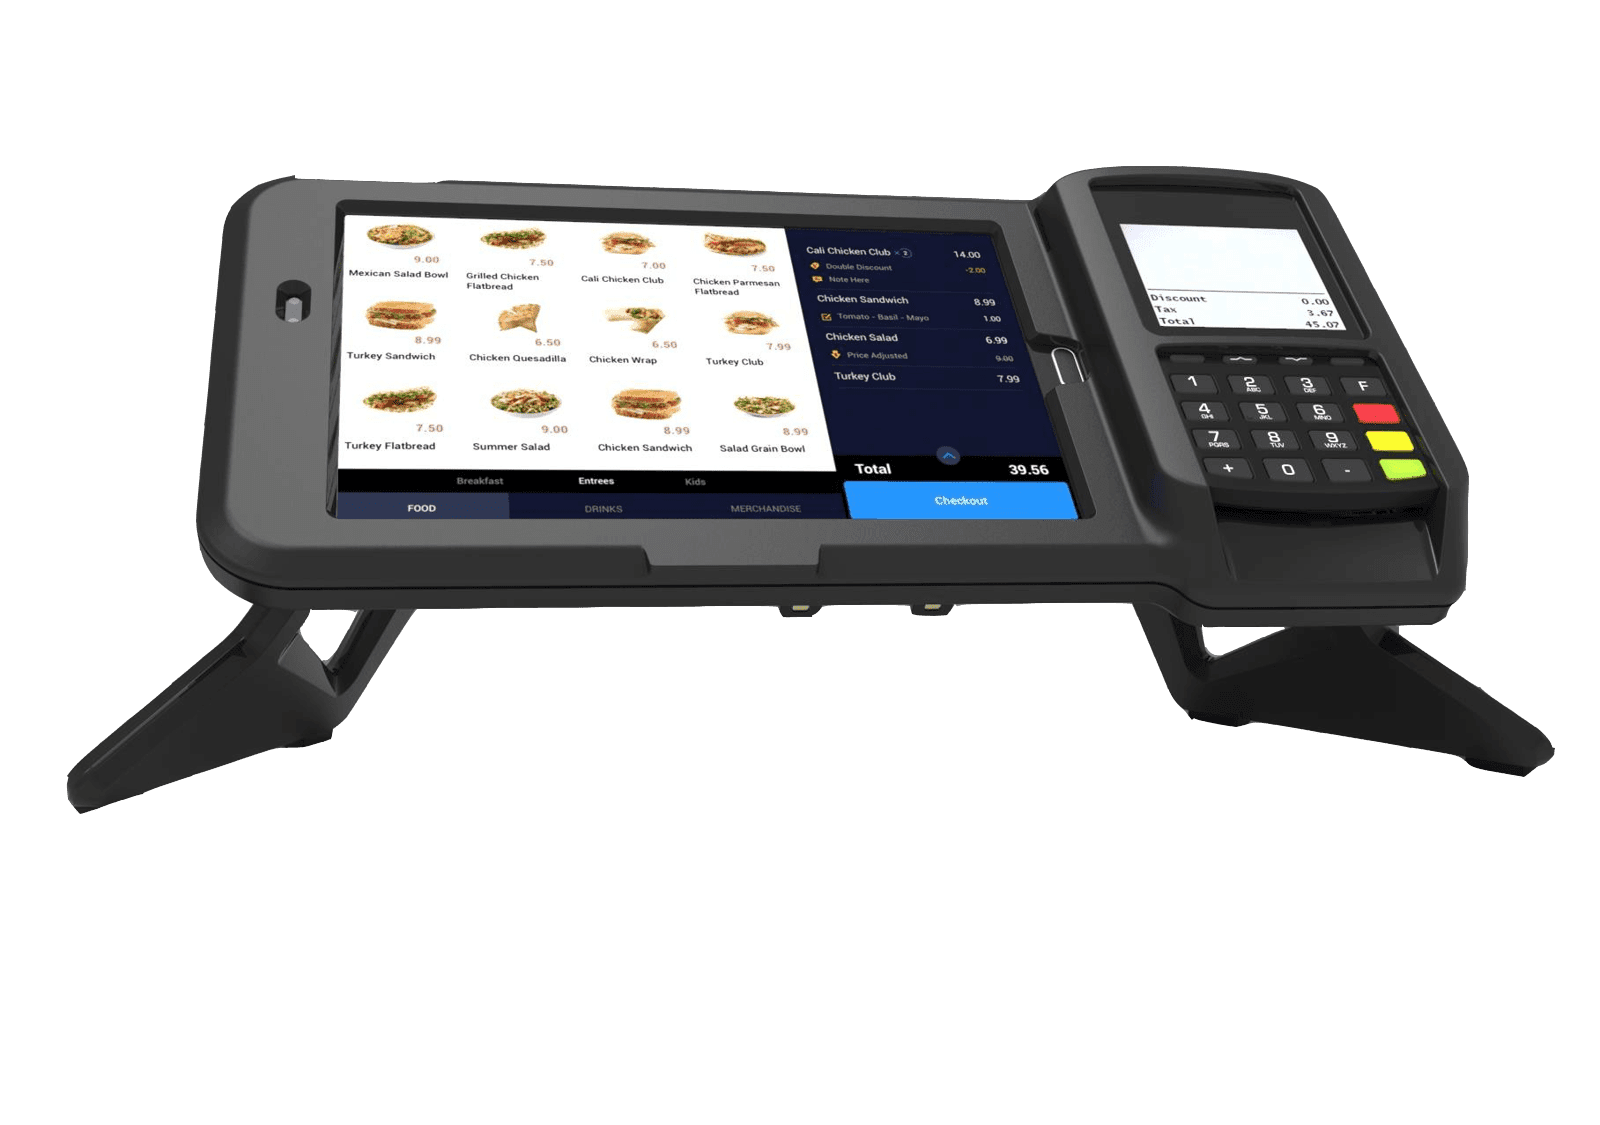 Samsung Tablet with Payment